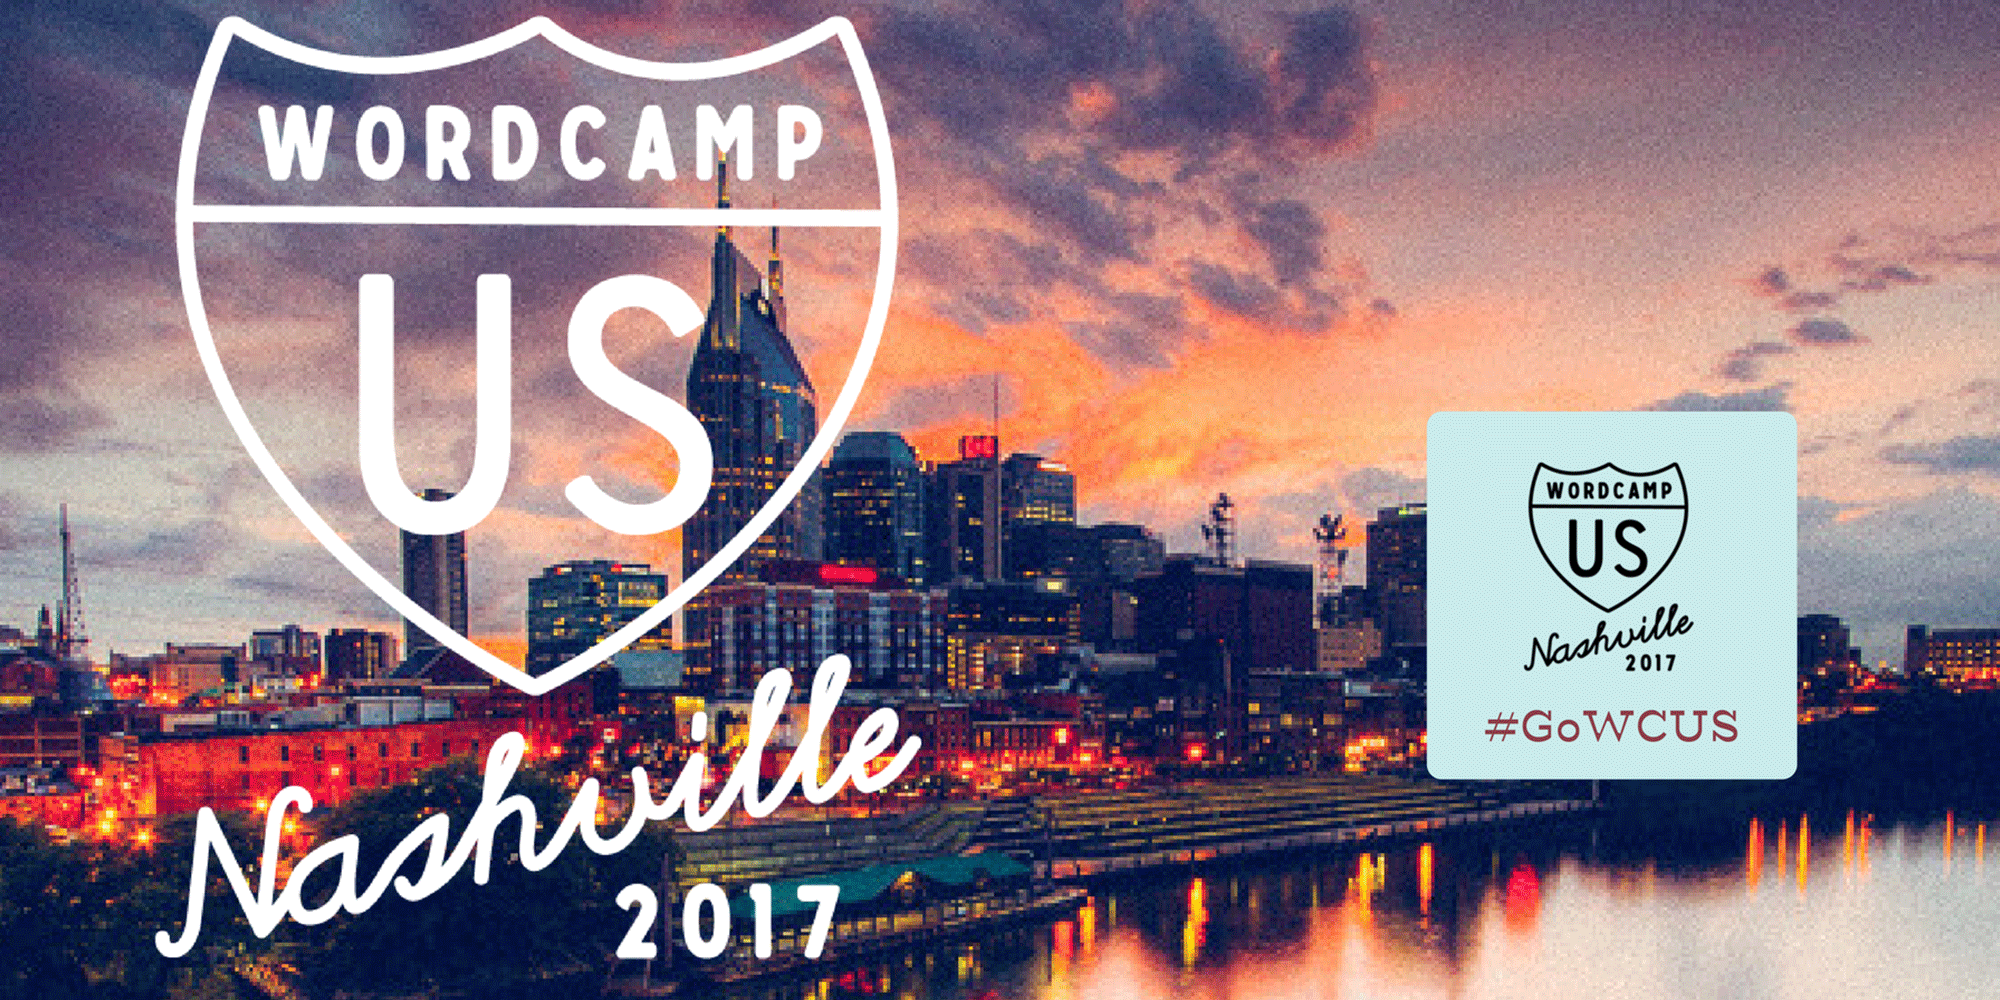 WordCamp US 2017 from the eyes of a 12 year old